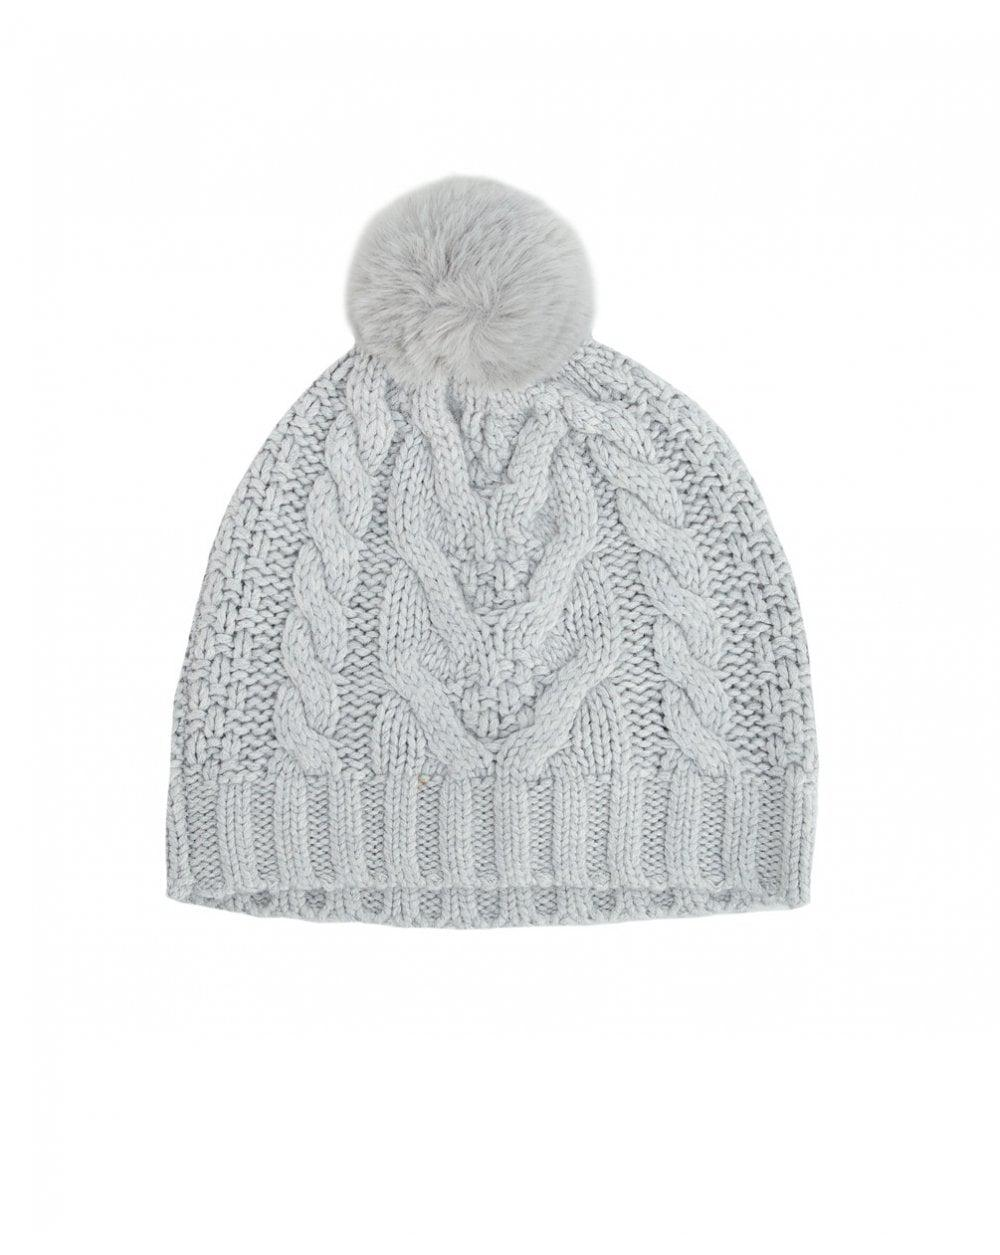 61a3fa5ef58 Lyst - Ted Baker Quirsa Cable Knit Pom Hat in Gray - Save 30%